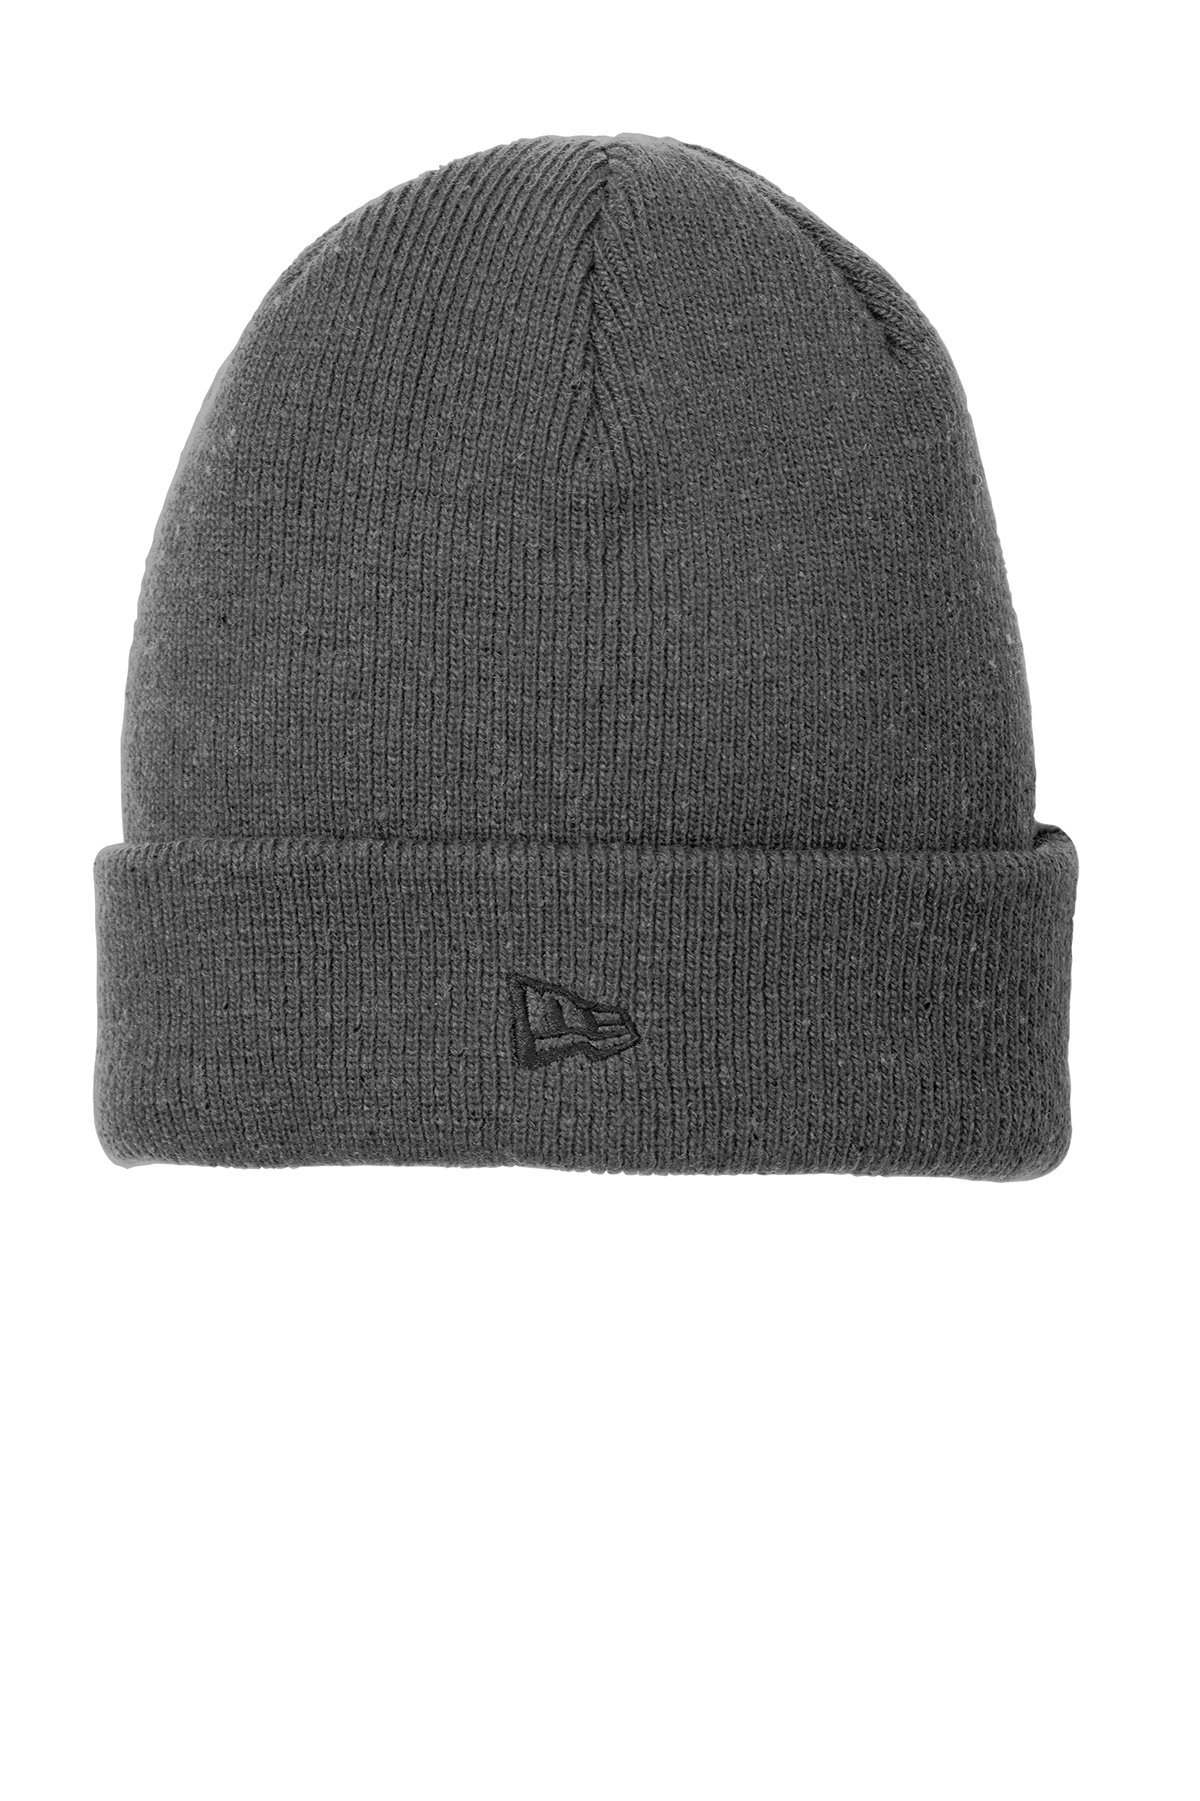 New Era NE905 - Speckled Beanie